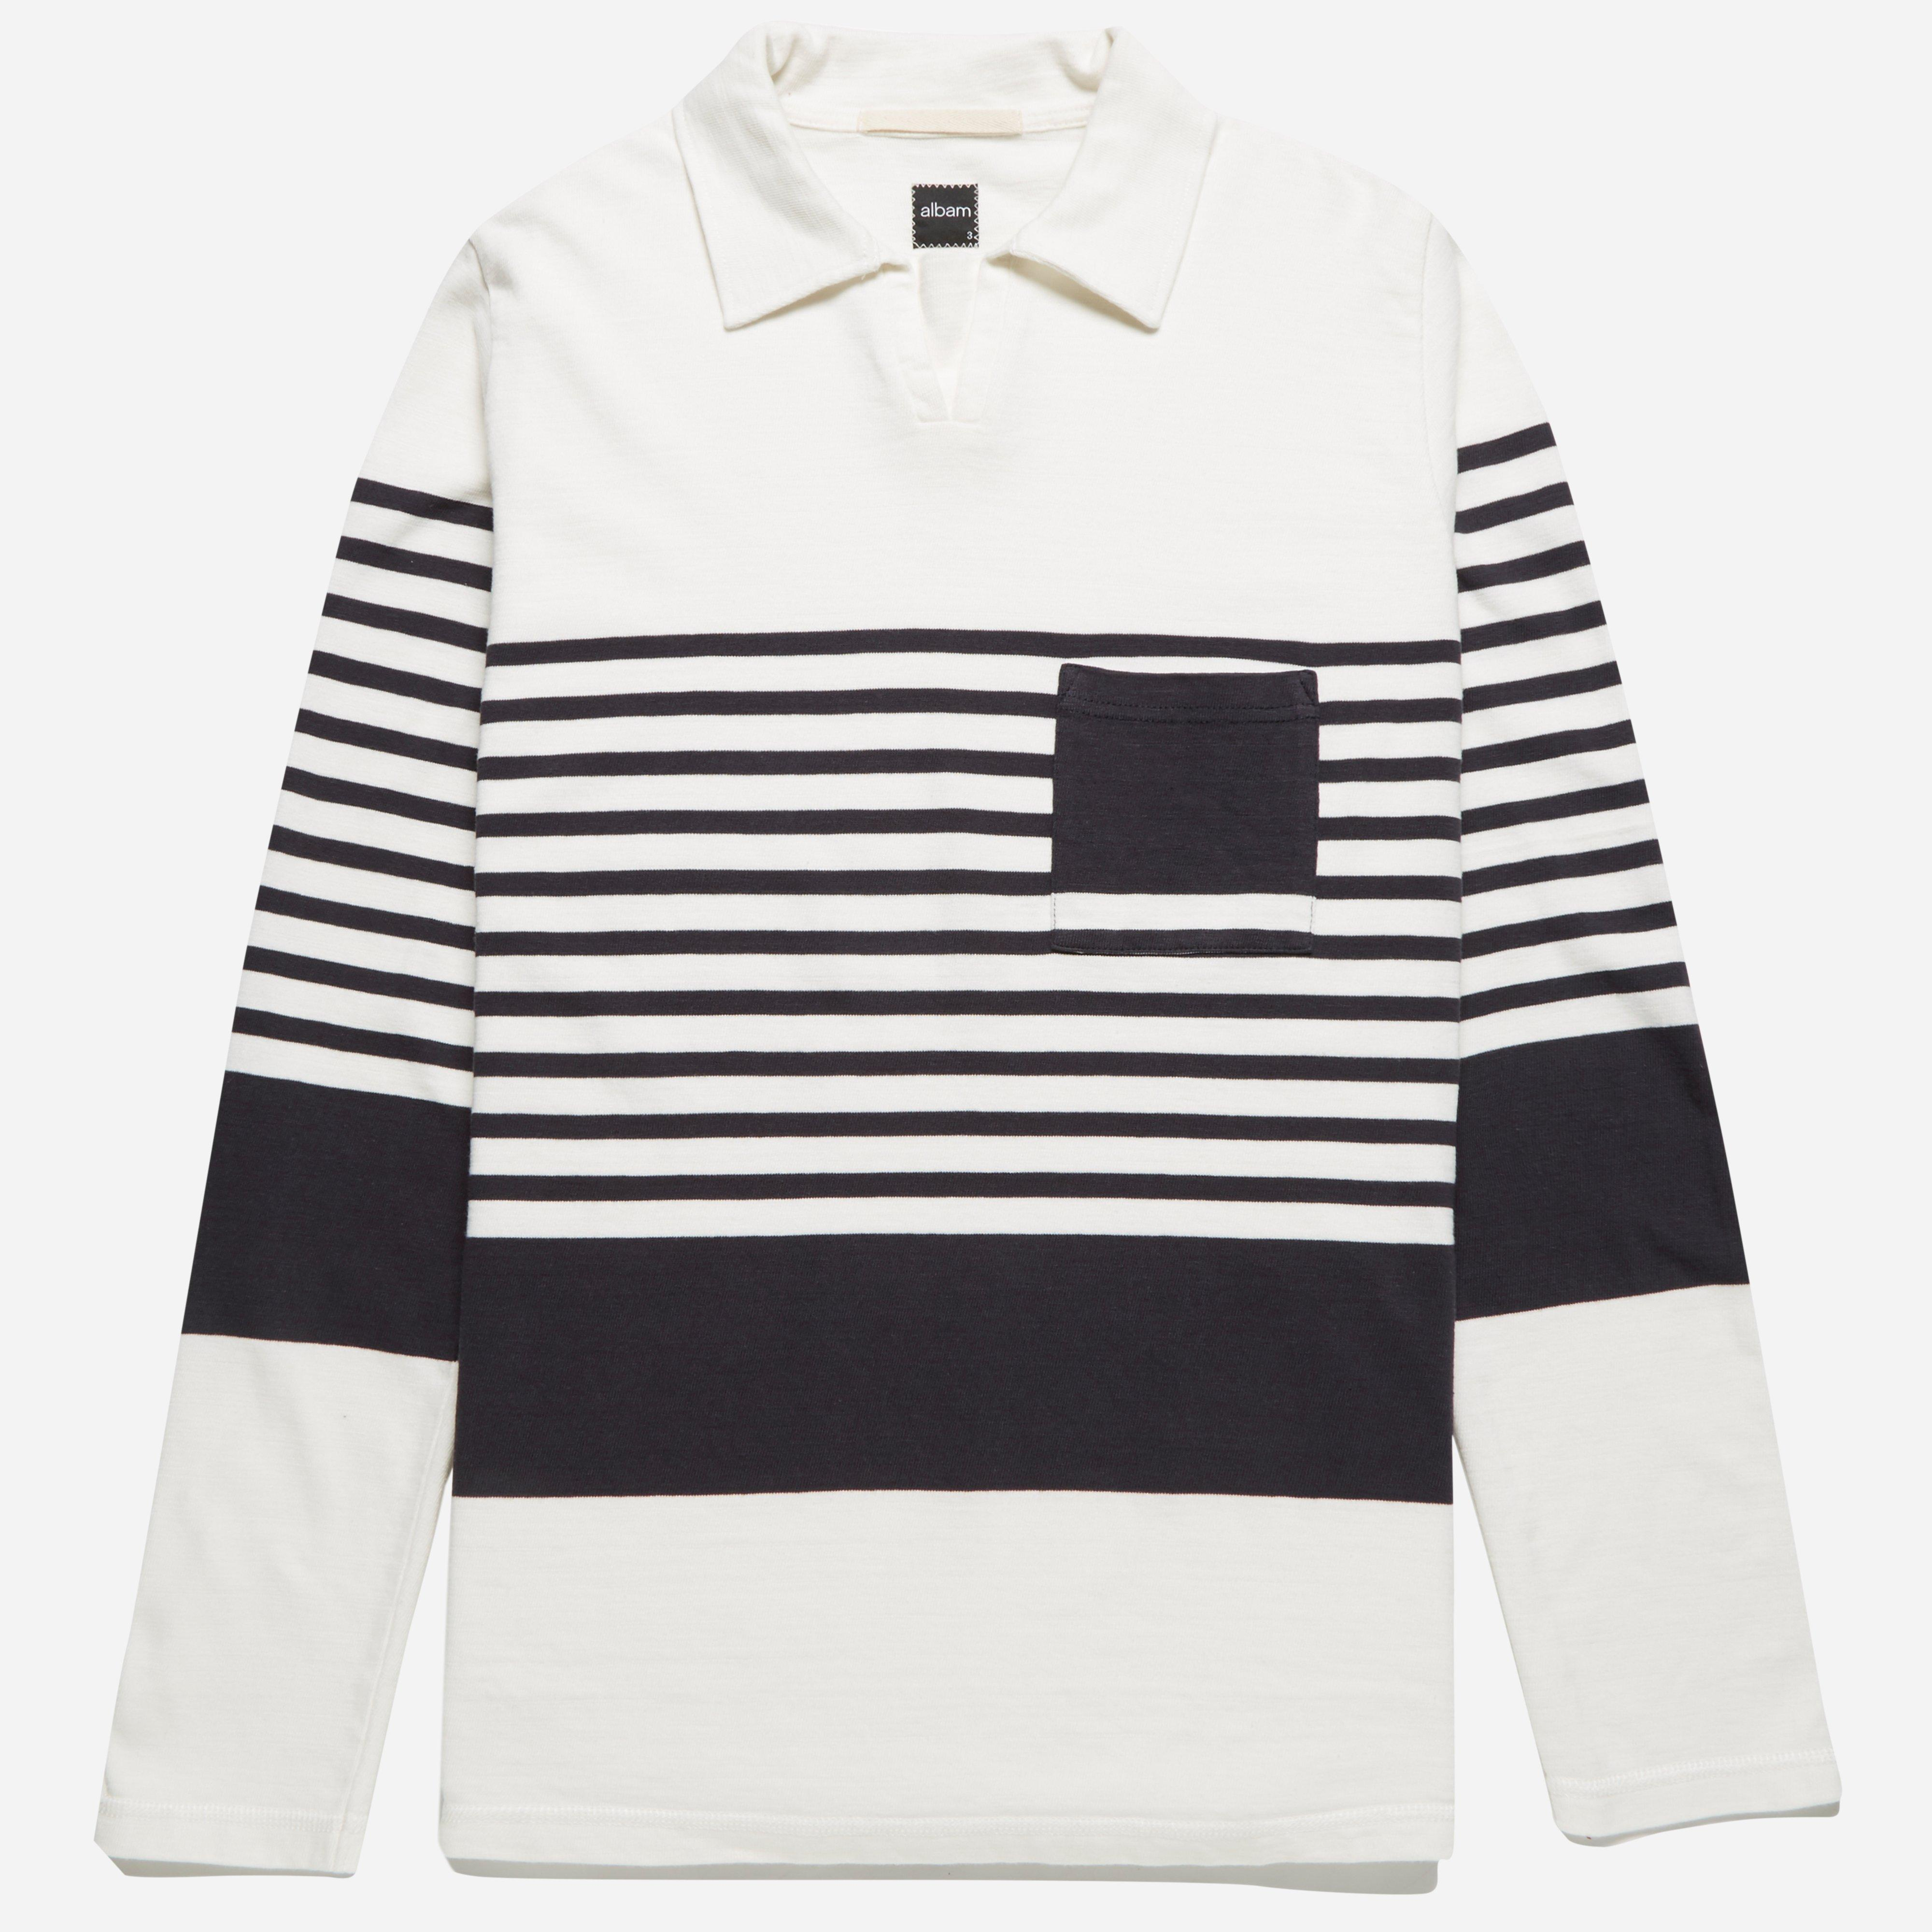 Albam Nautical Rugby Jersey